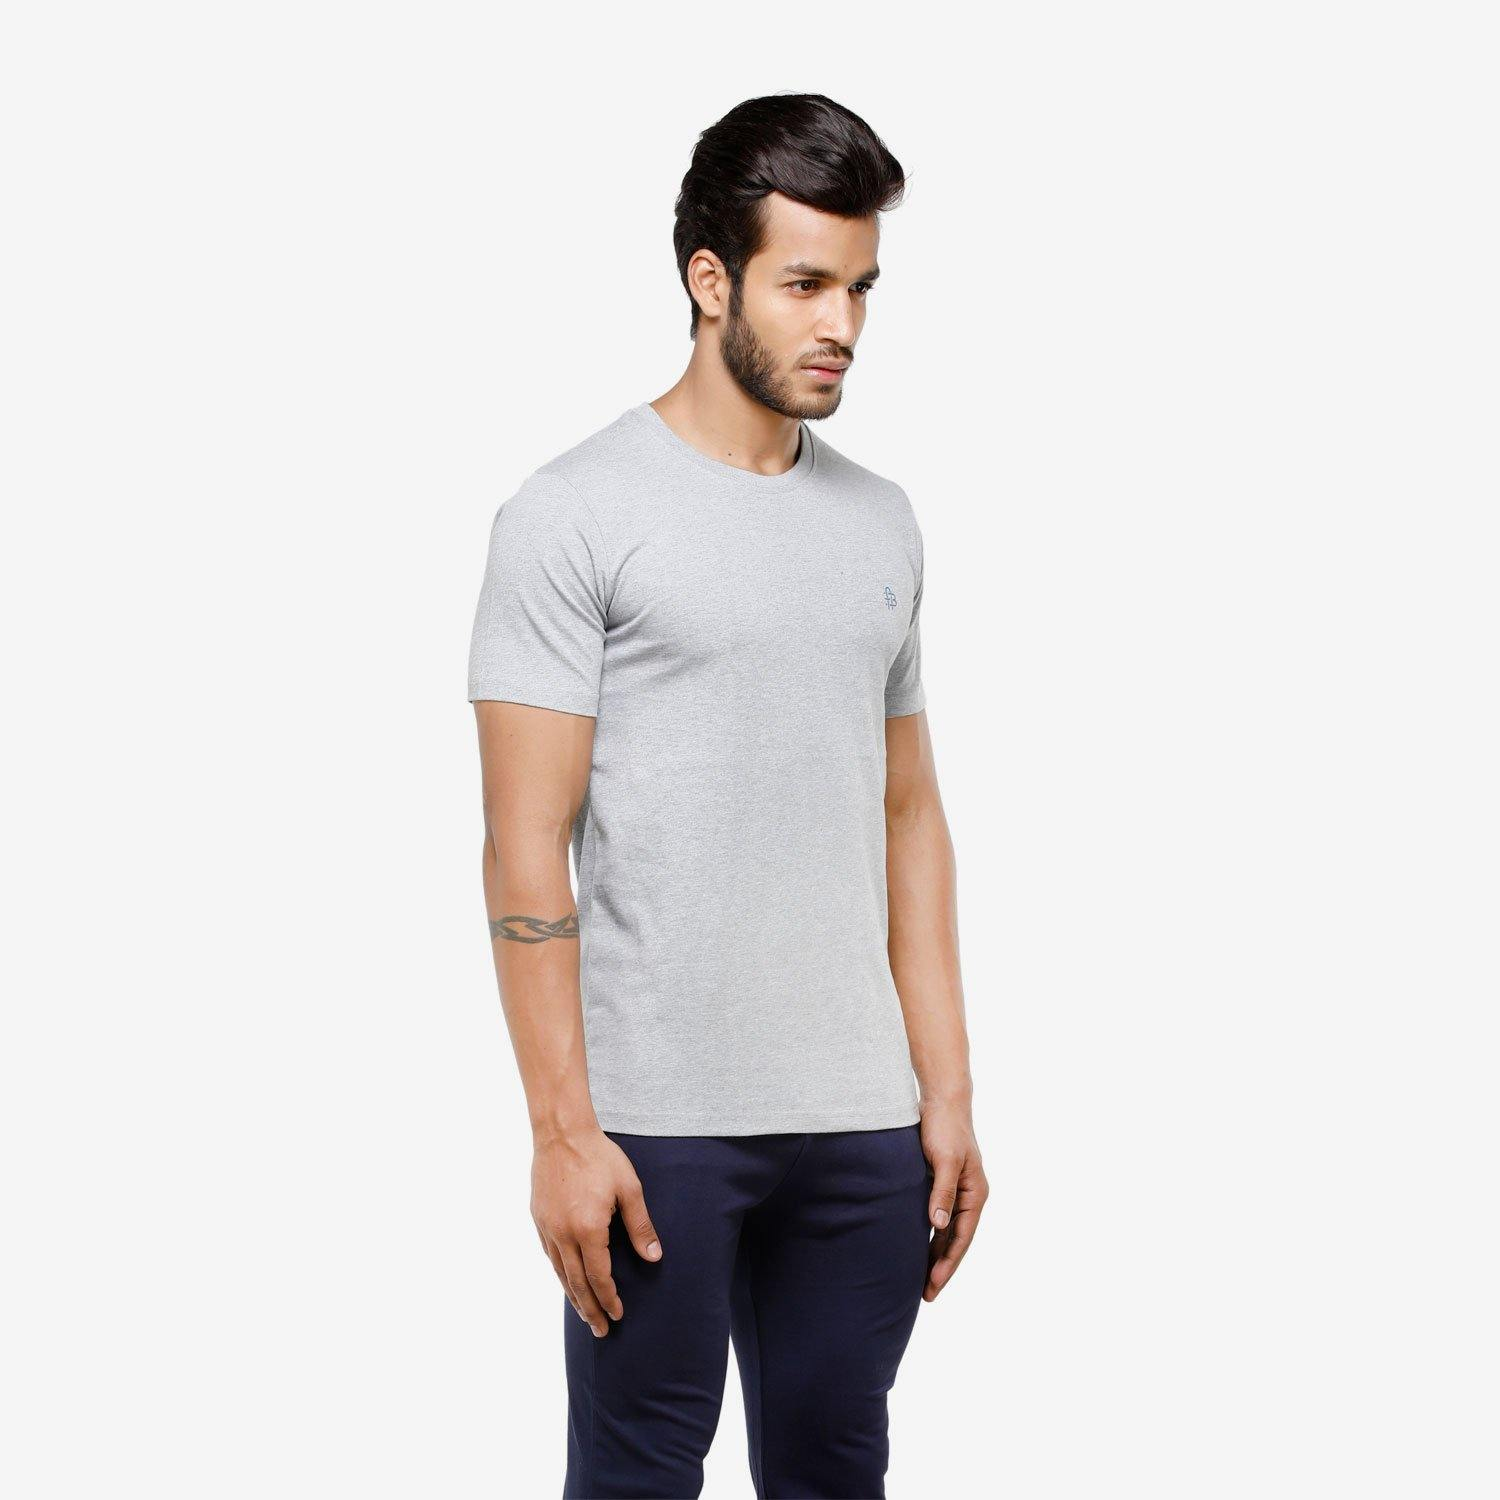 Men's Plain Half Sleeve Round Neck Casual T-Shirt For Summer